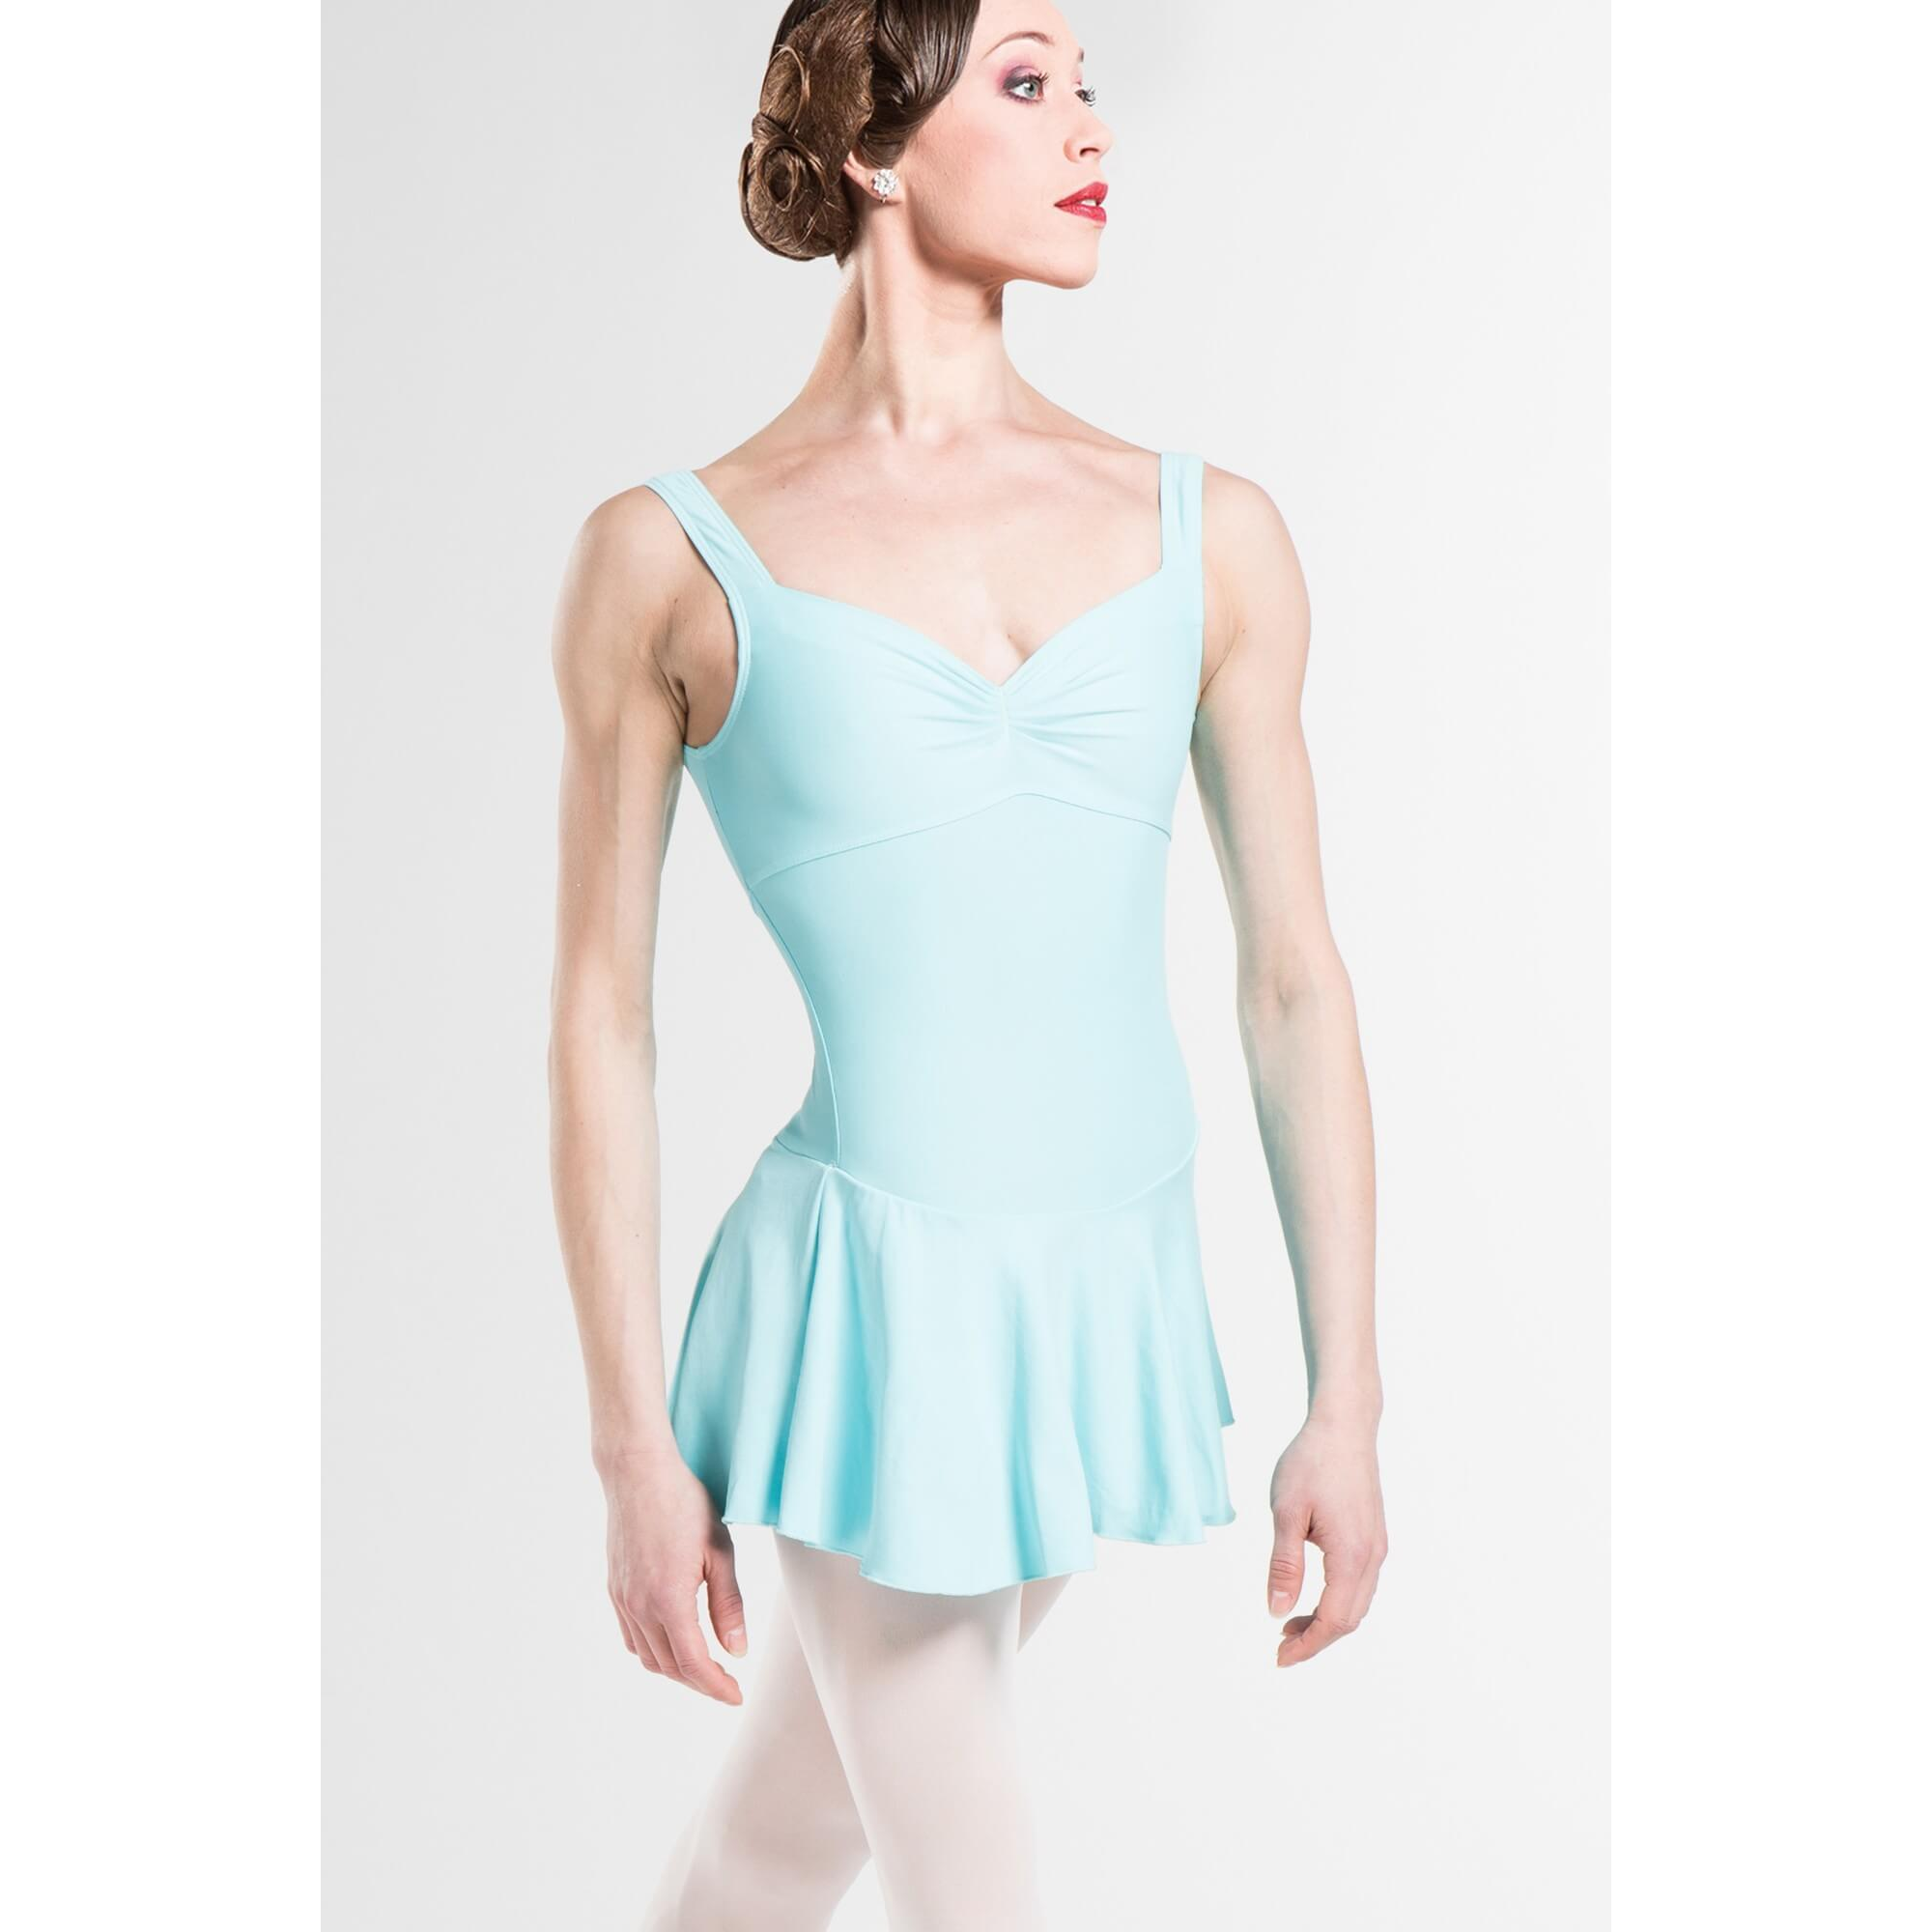 Tunique de danse WEAR MOI Leotard DIVINE, Dance World, Bruxelles